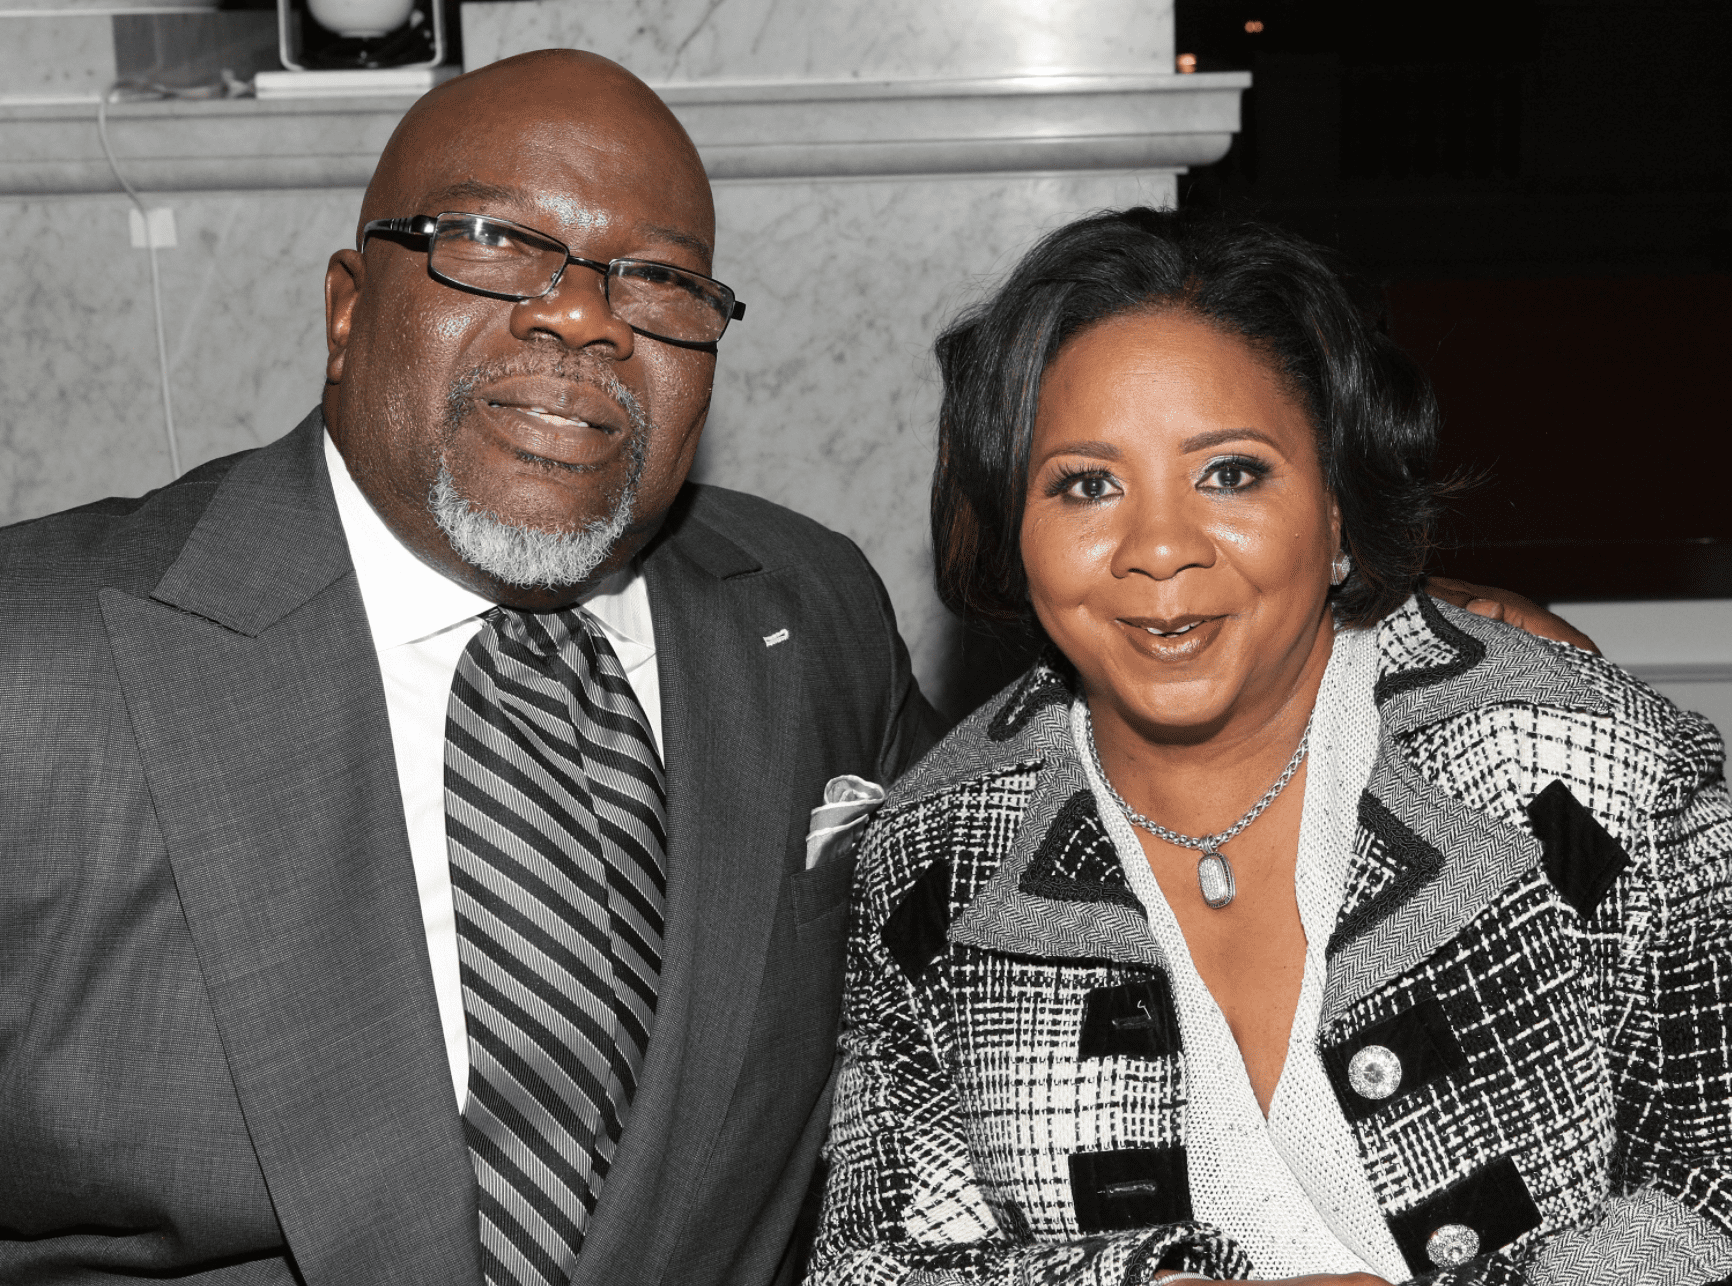 Bishop T. D. Jakes and his wife Serita Jakes at the BET Honors 2013 at The Library of Congress on January 11, 2013    Photo: Getty Images